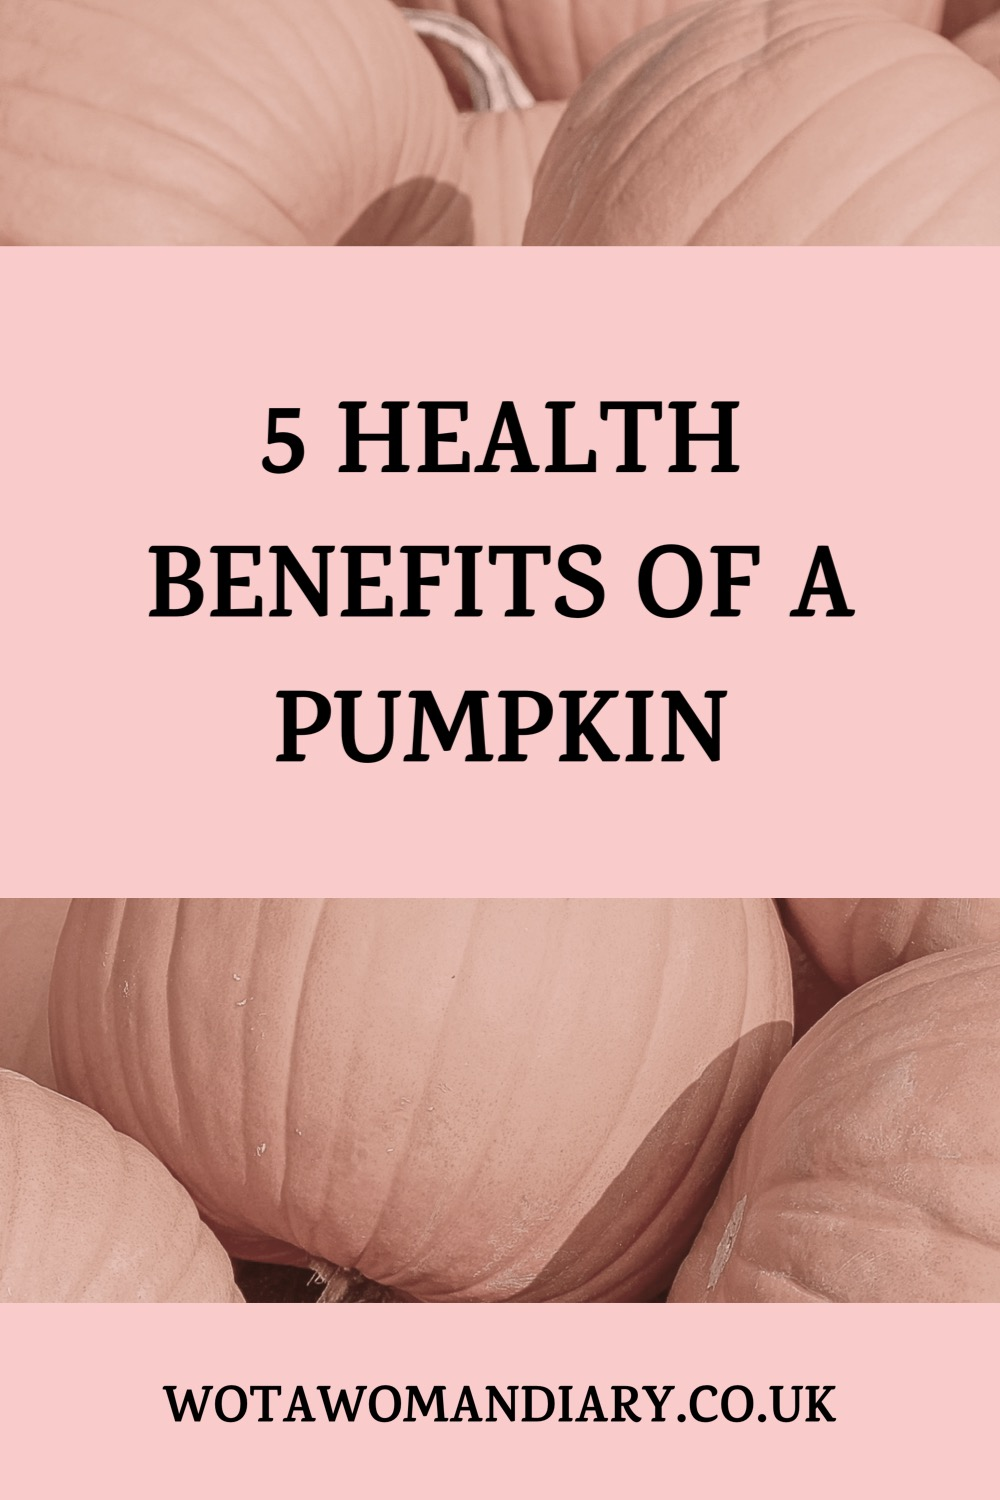 text image which reads 5 health benefits of a pumpkin with blurred pumpkin image in the background